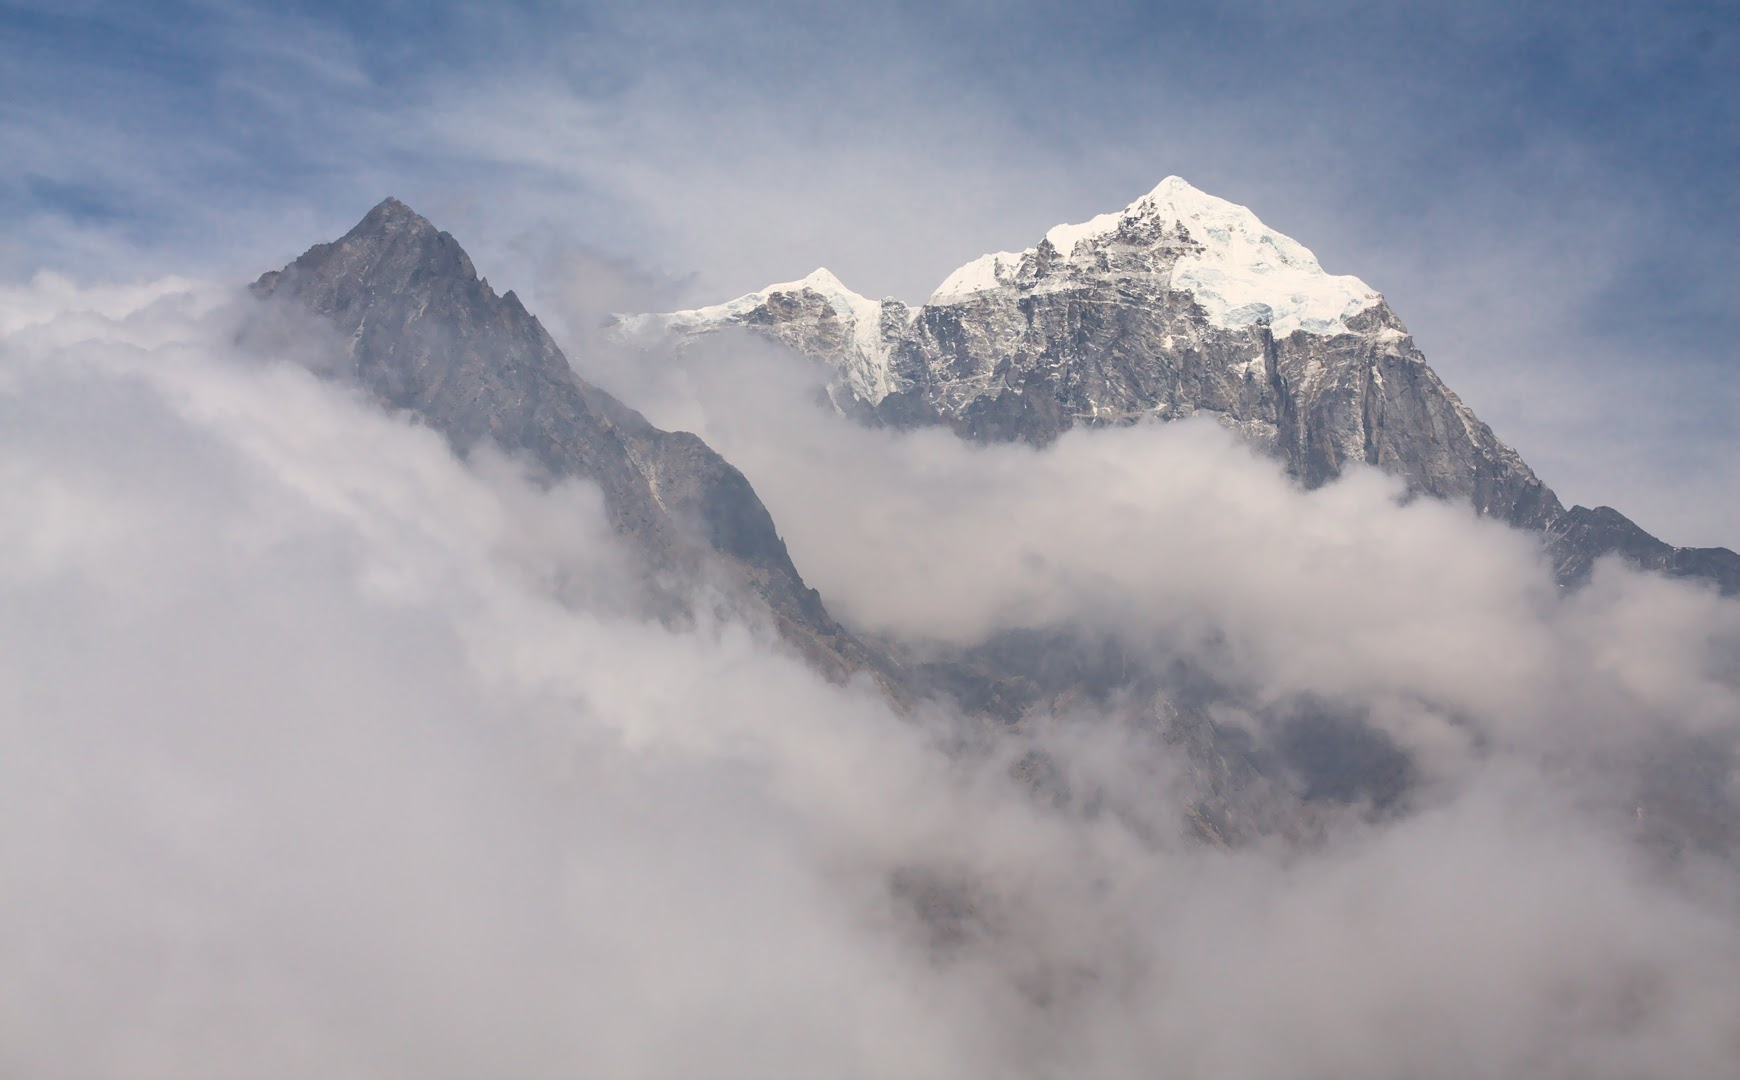 Everest is hiding behind the clouds